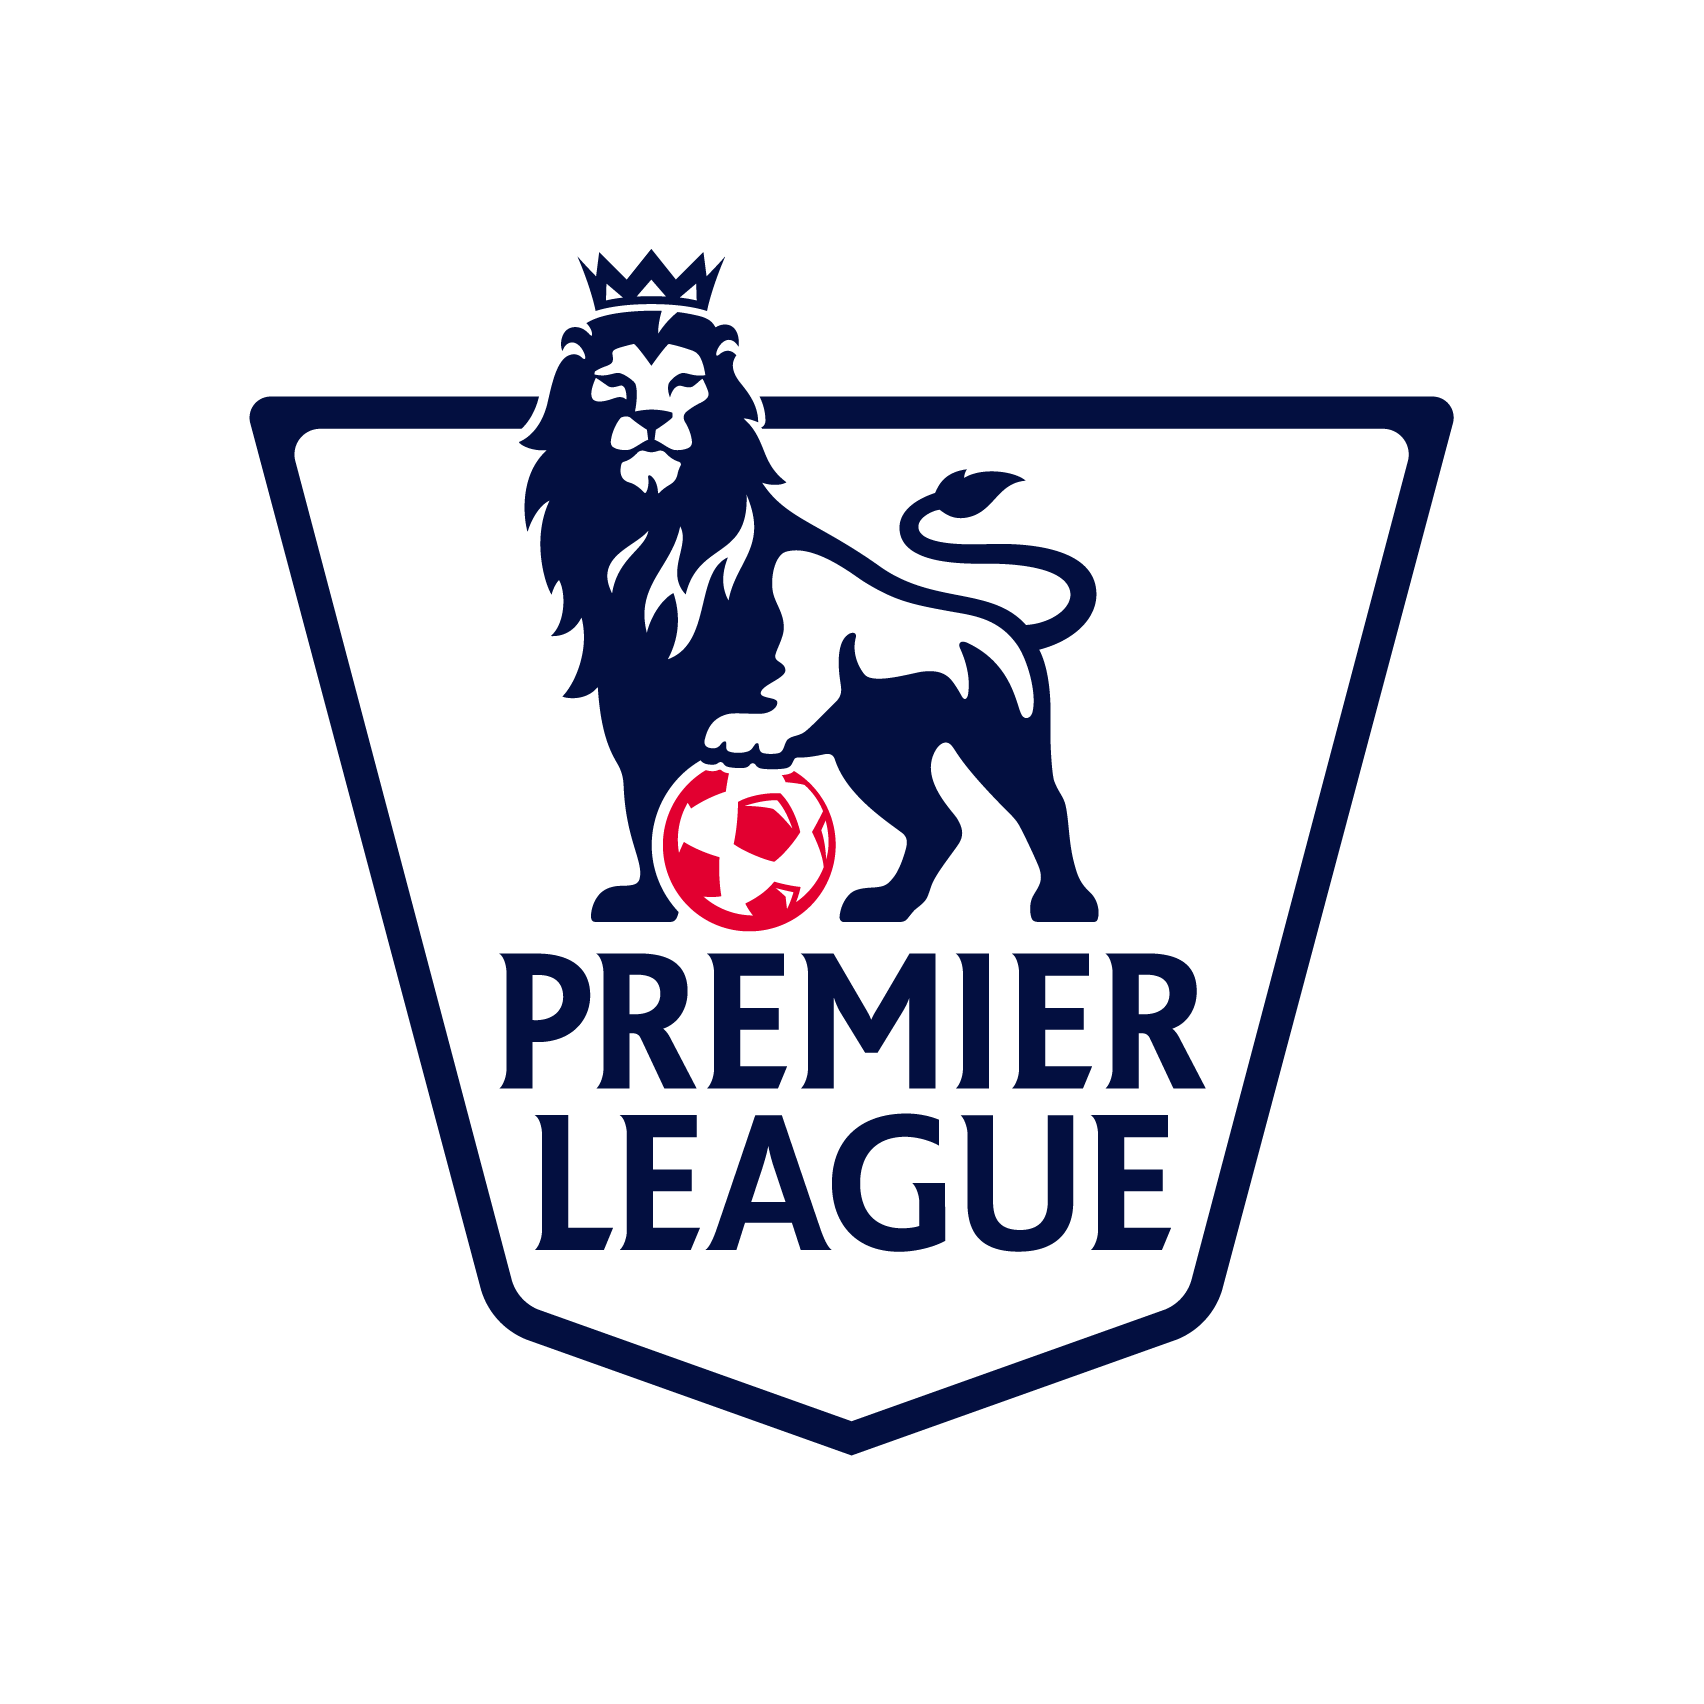 Premier-League-Logo-shield